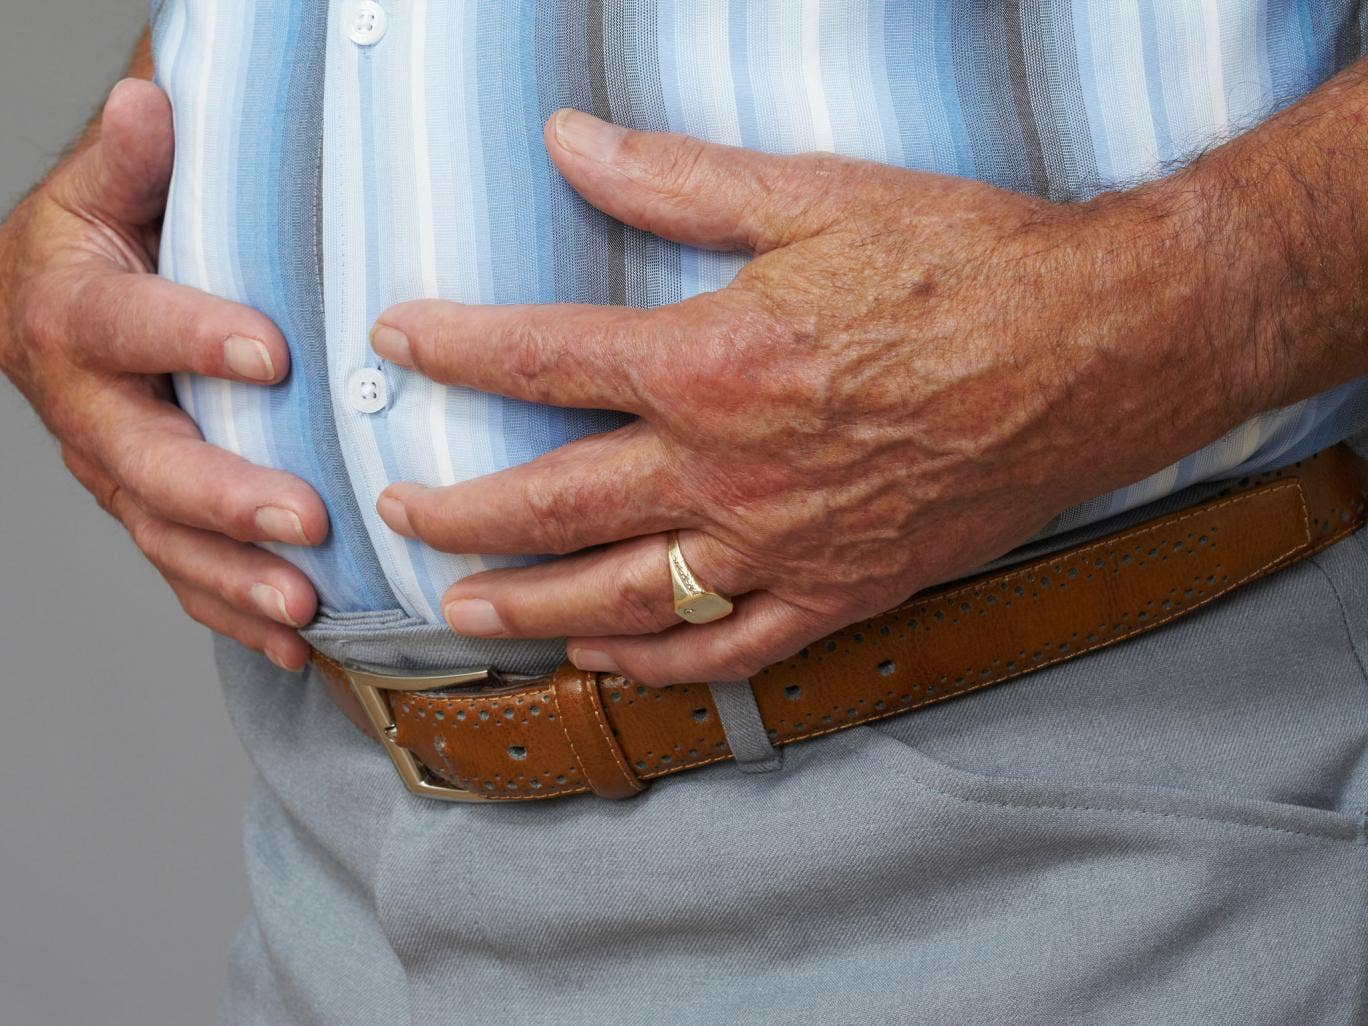 Three-quarters of people in some parts of England are obese or overweight, a new shocking new league table of the country's fattest towns and cities has revealed.